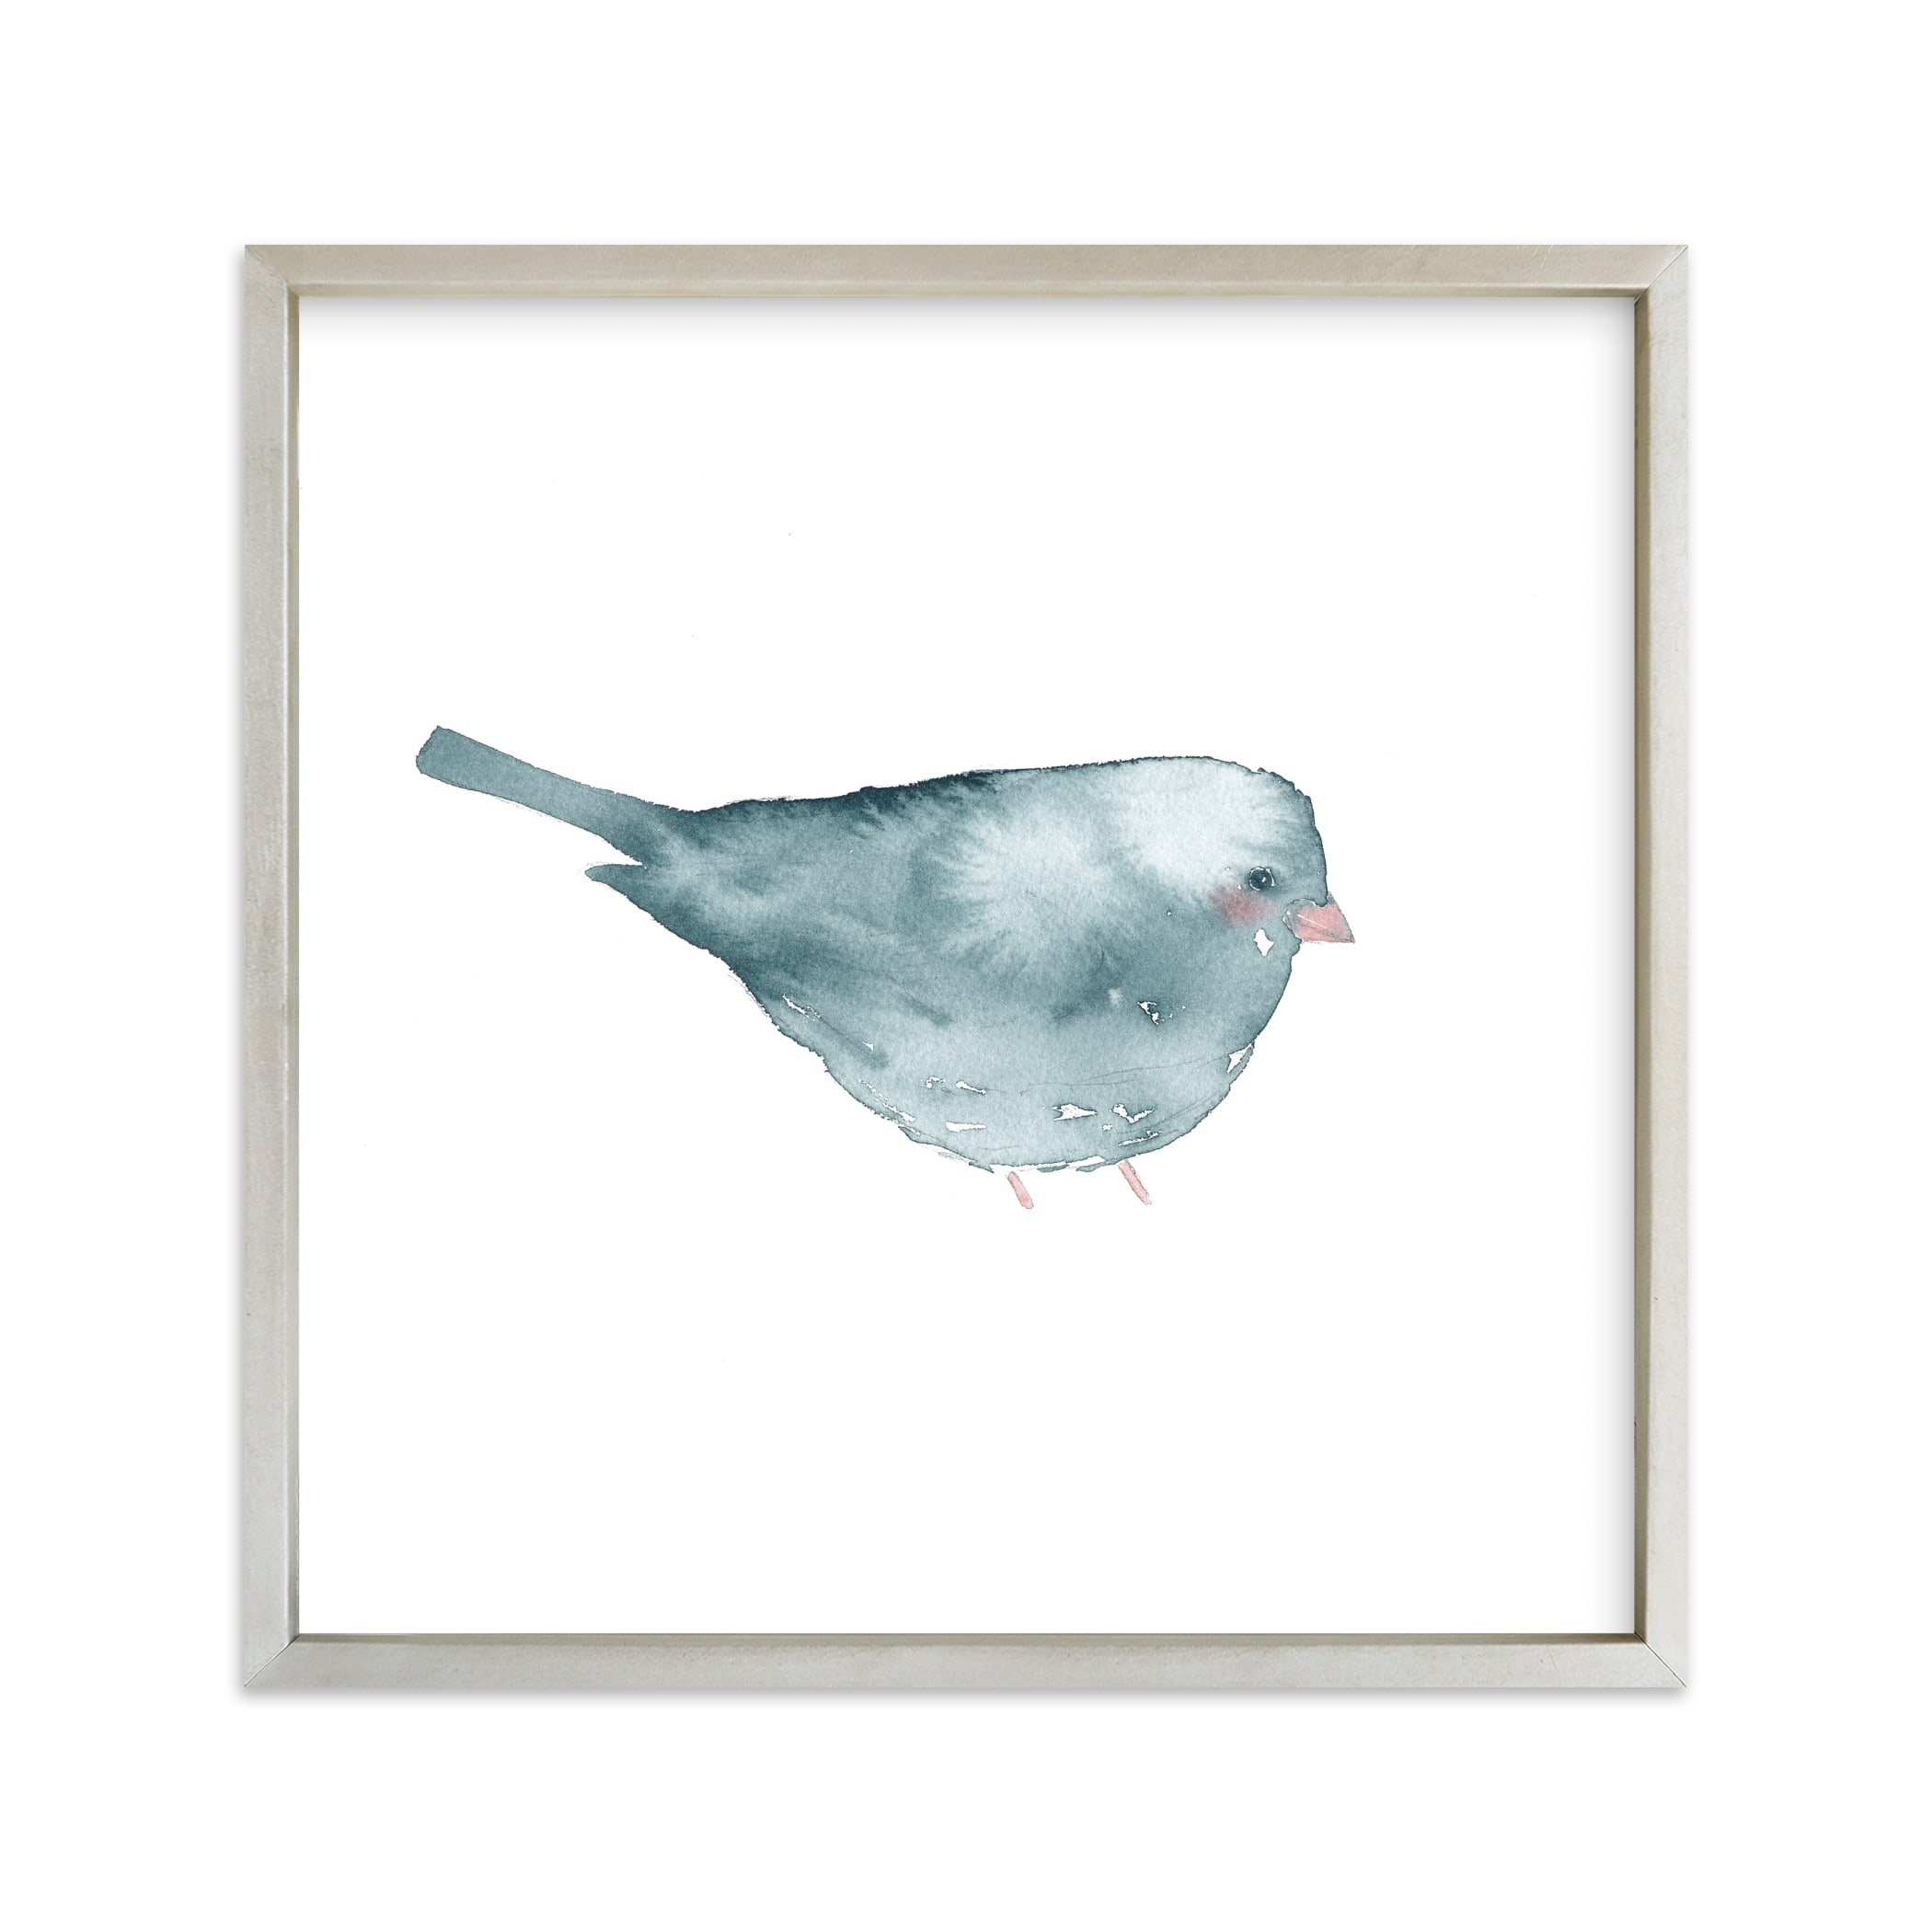 """""""Blushing Bird 2"""" - Limited Edition Art Print by Renee Anne Bouffard-McManus in beautiful frame options and a variety of sizes."""